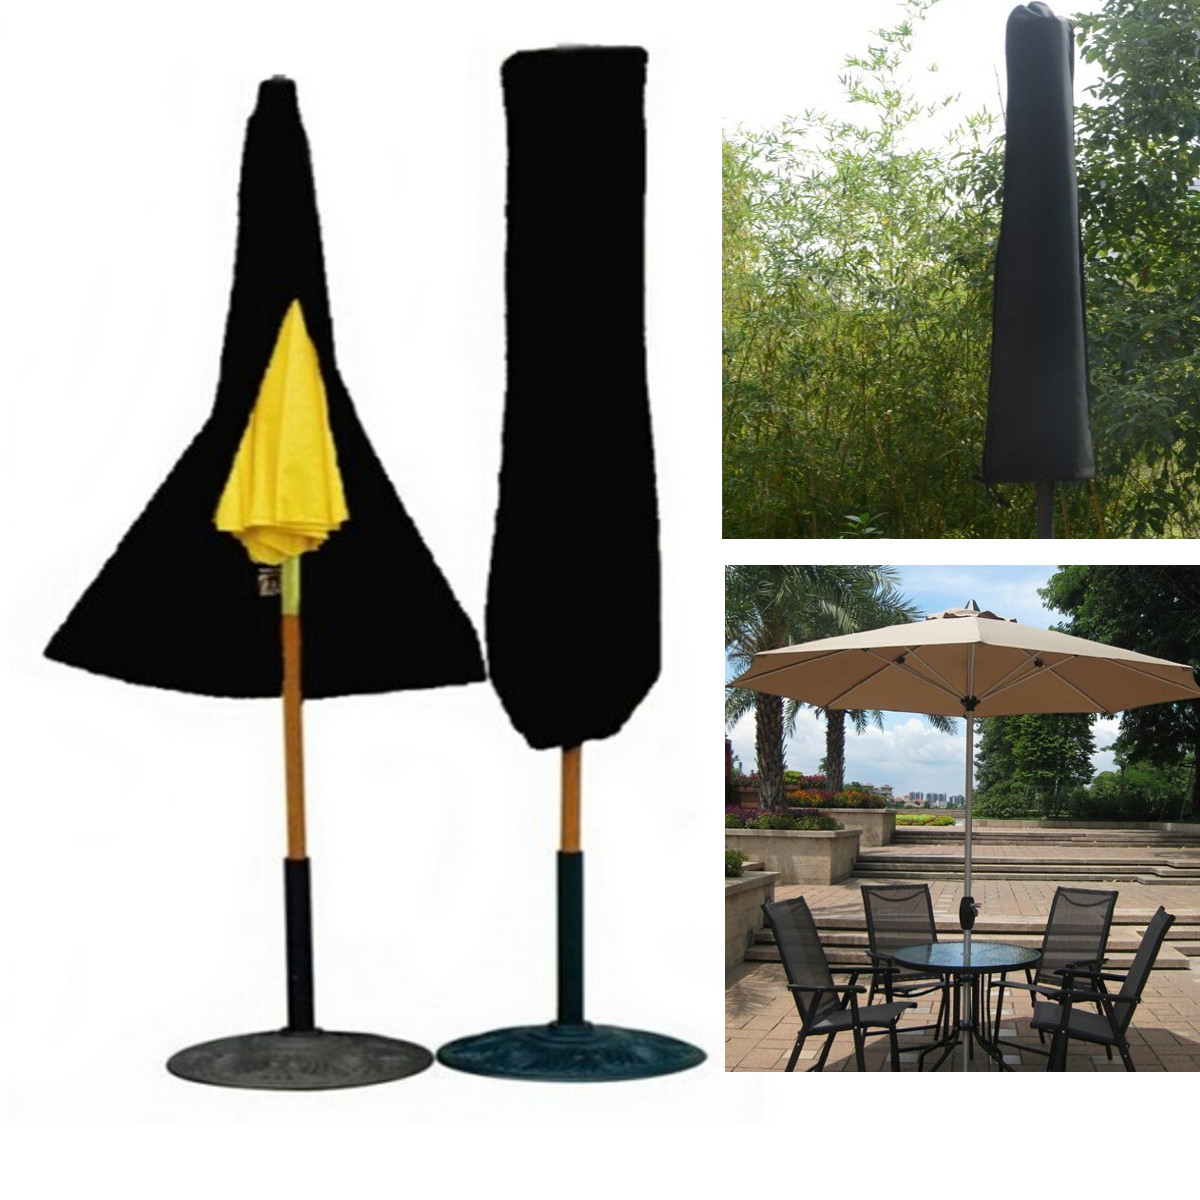 Patio Umbrella Covers With Zipper: Outdoor Yard Garden Umbrella Parasol Protective Cover